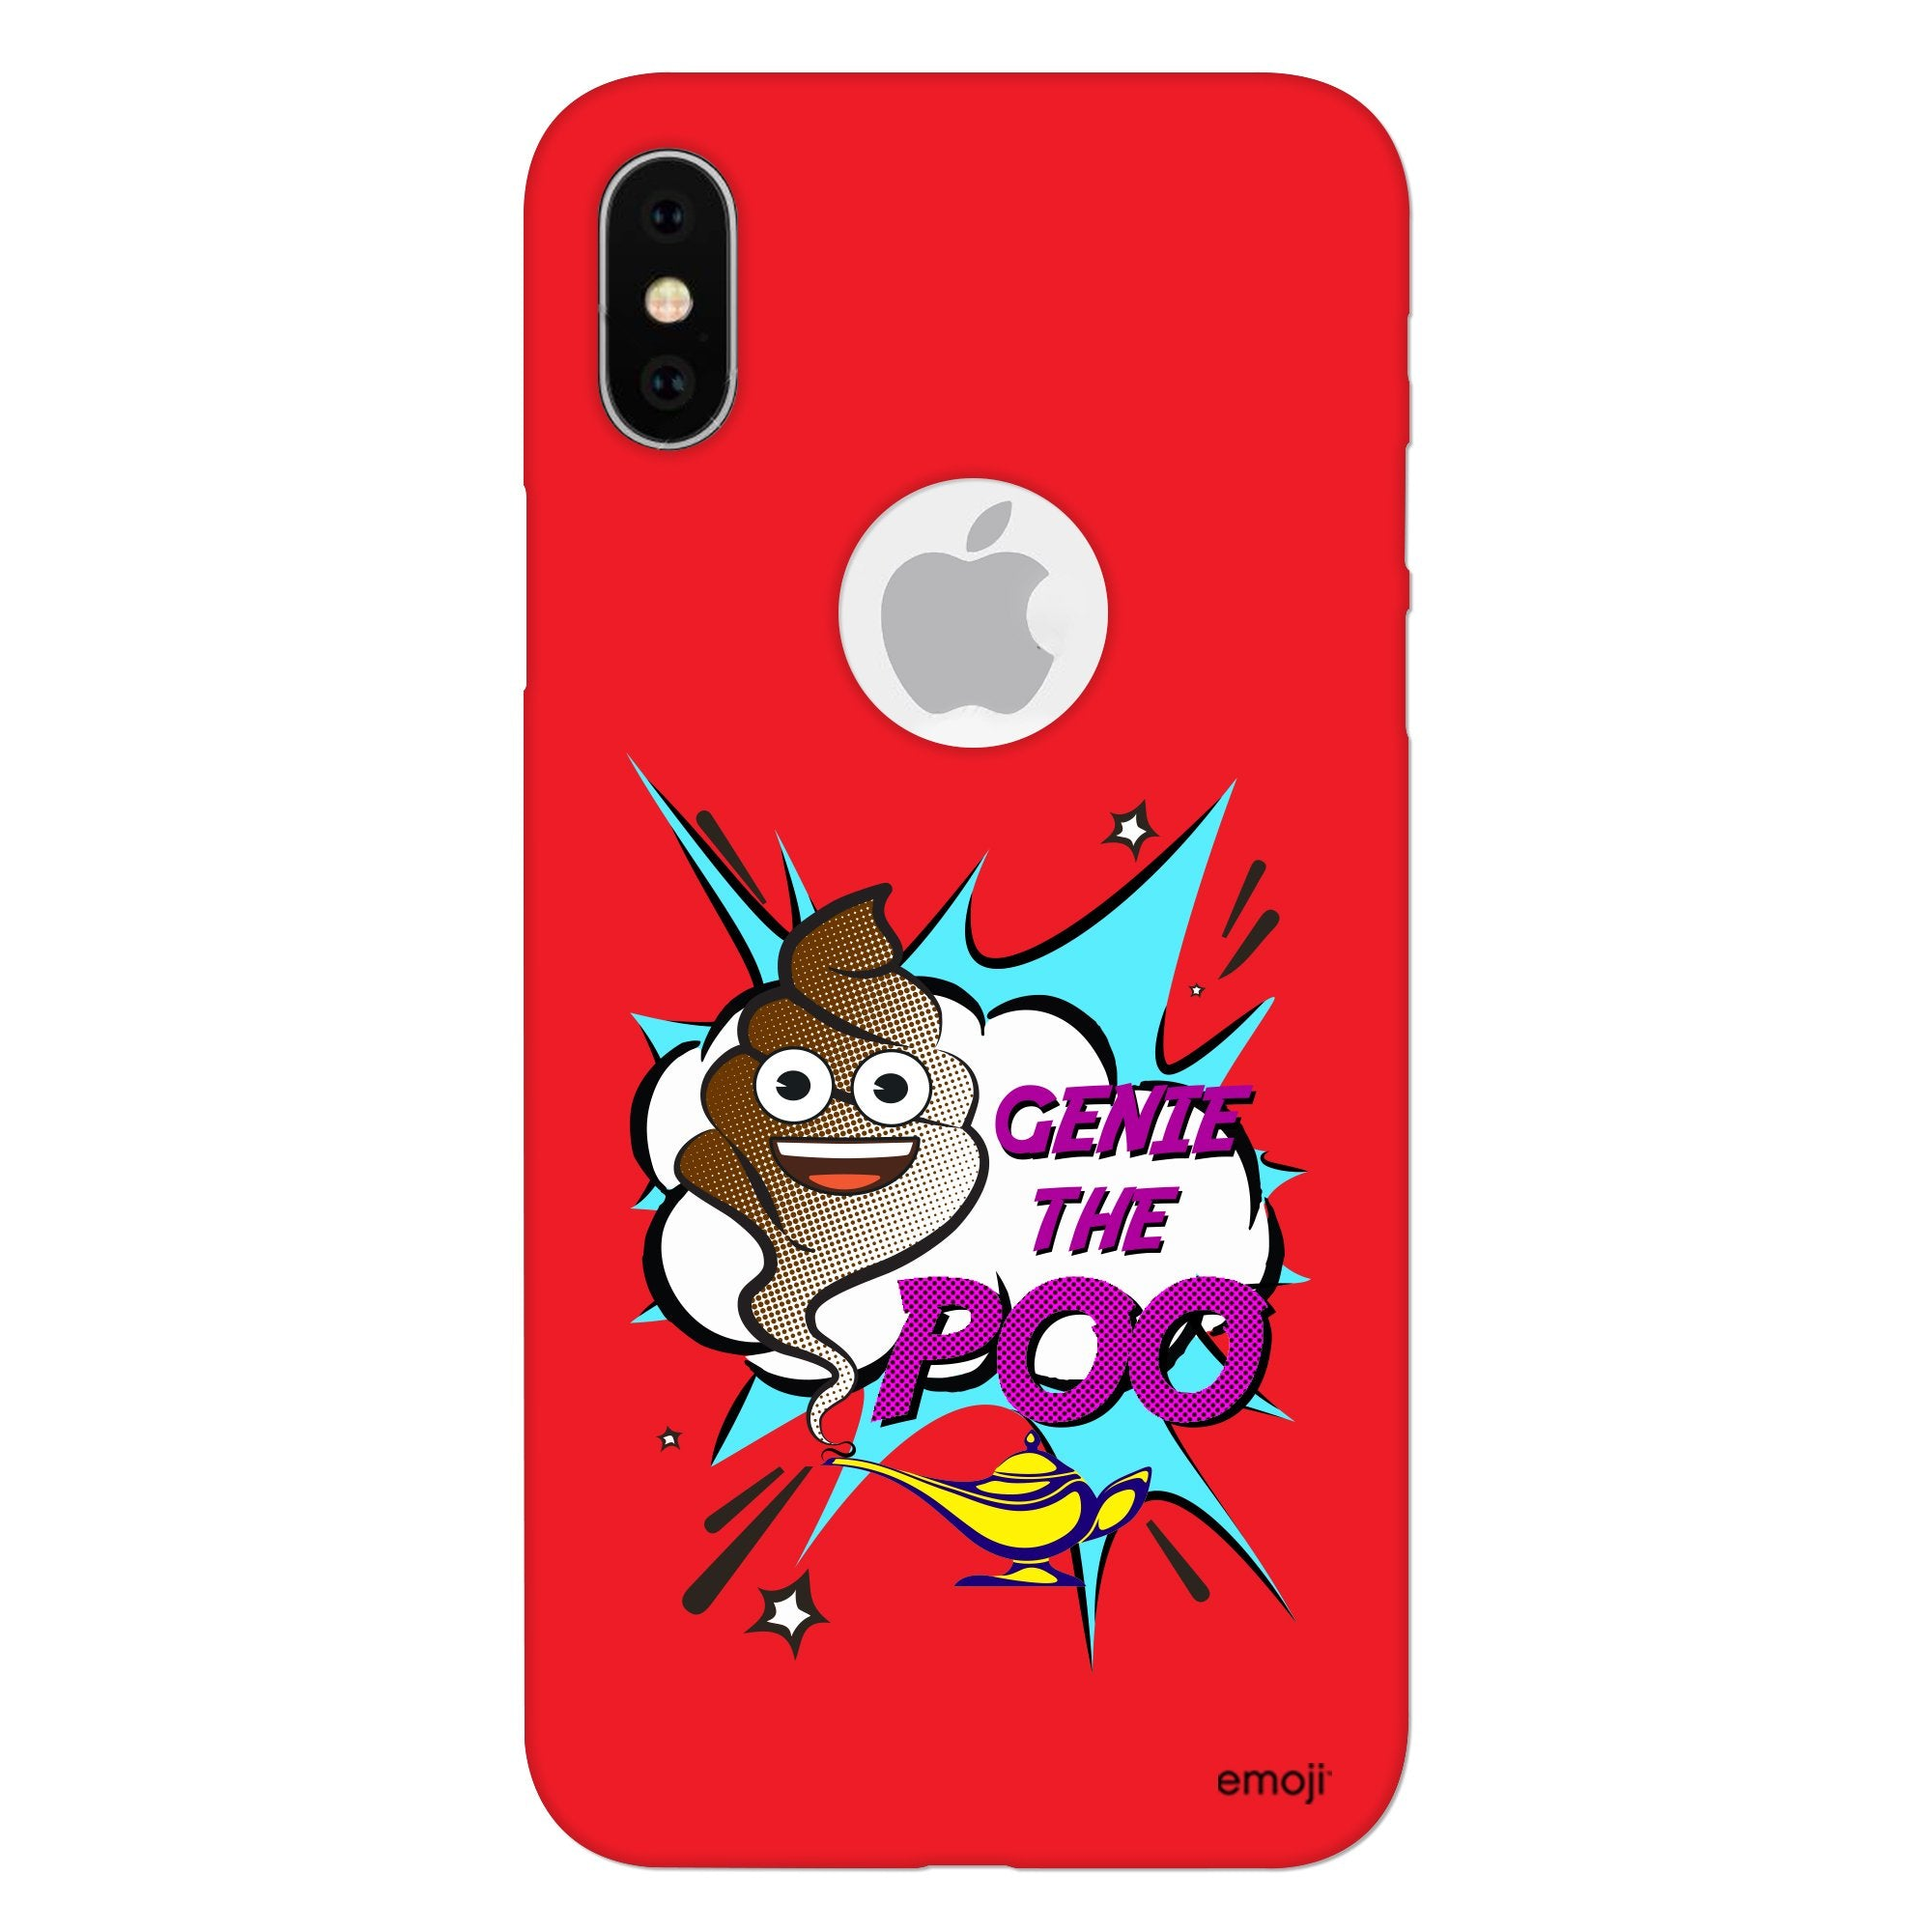 Official Licensed emoji Printed Mobile Case - Genie The Poo